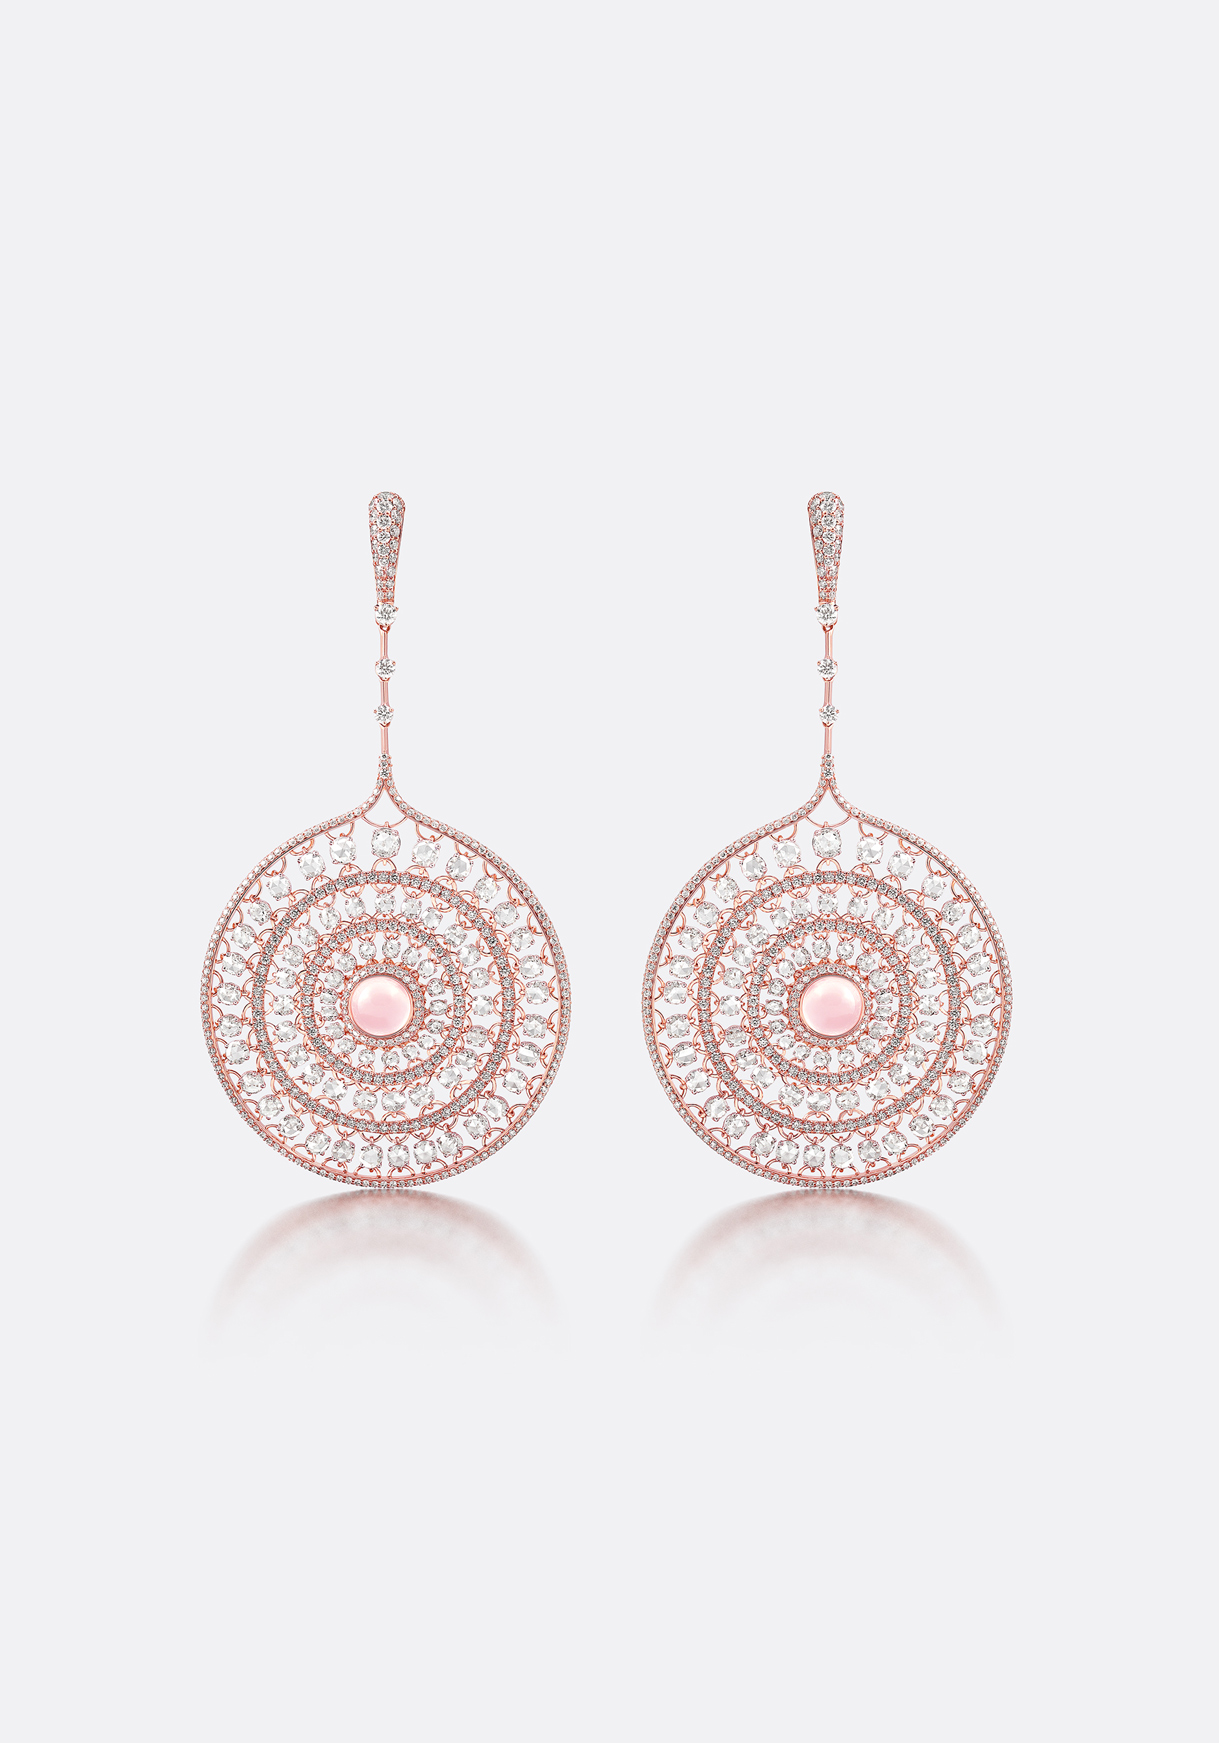 Delicate tone-on-tone hues, complemented by softly-linked jewels.